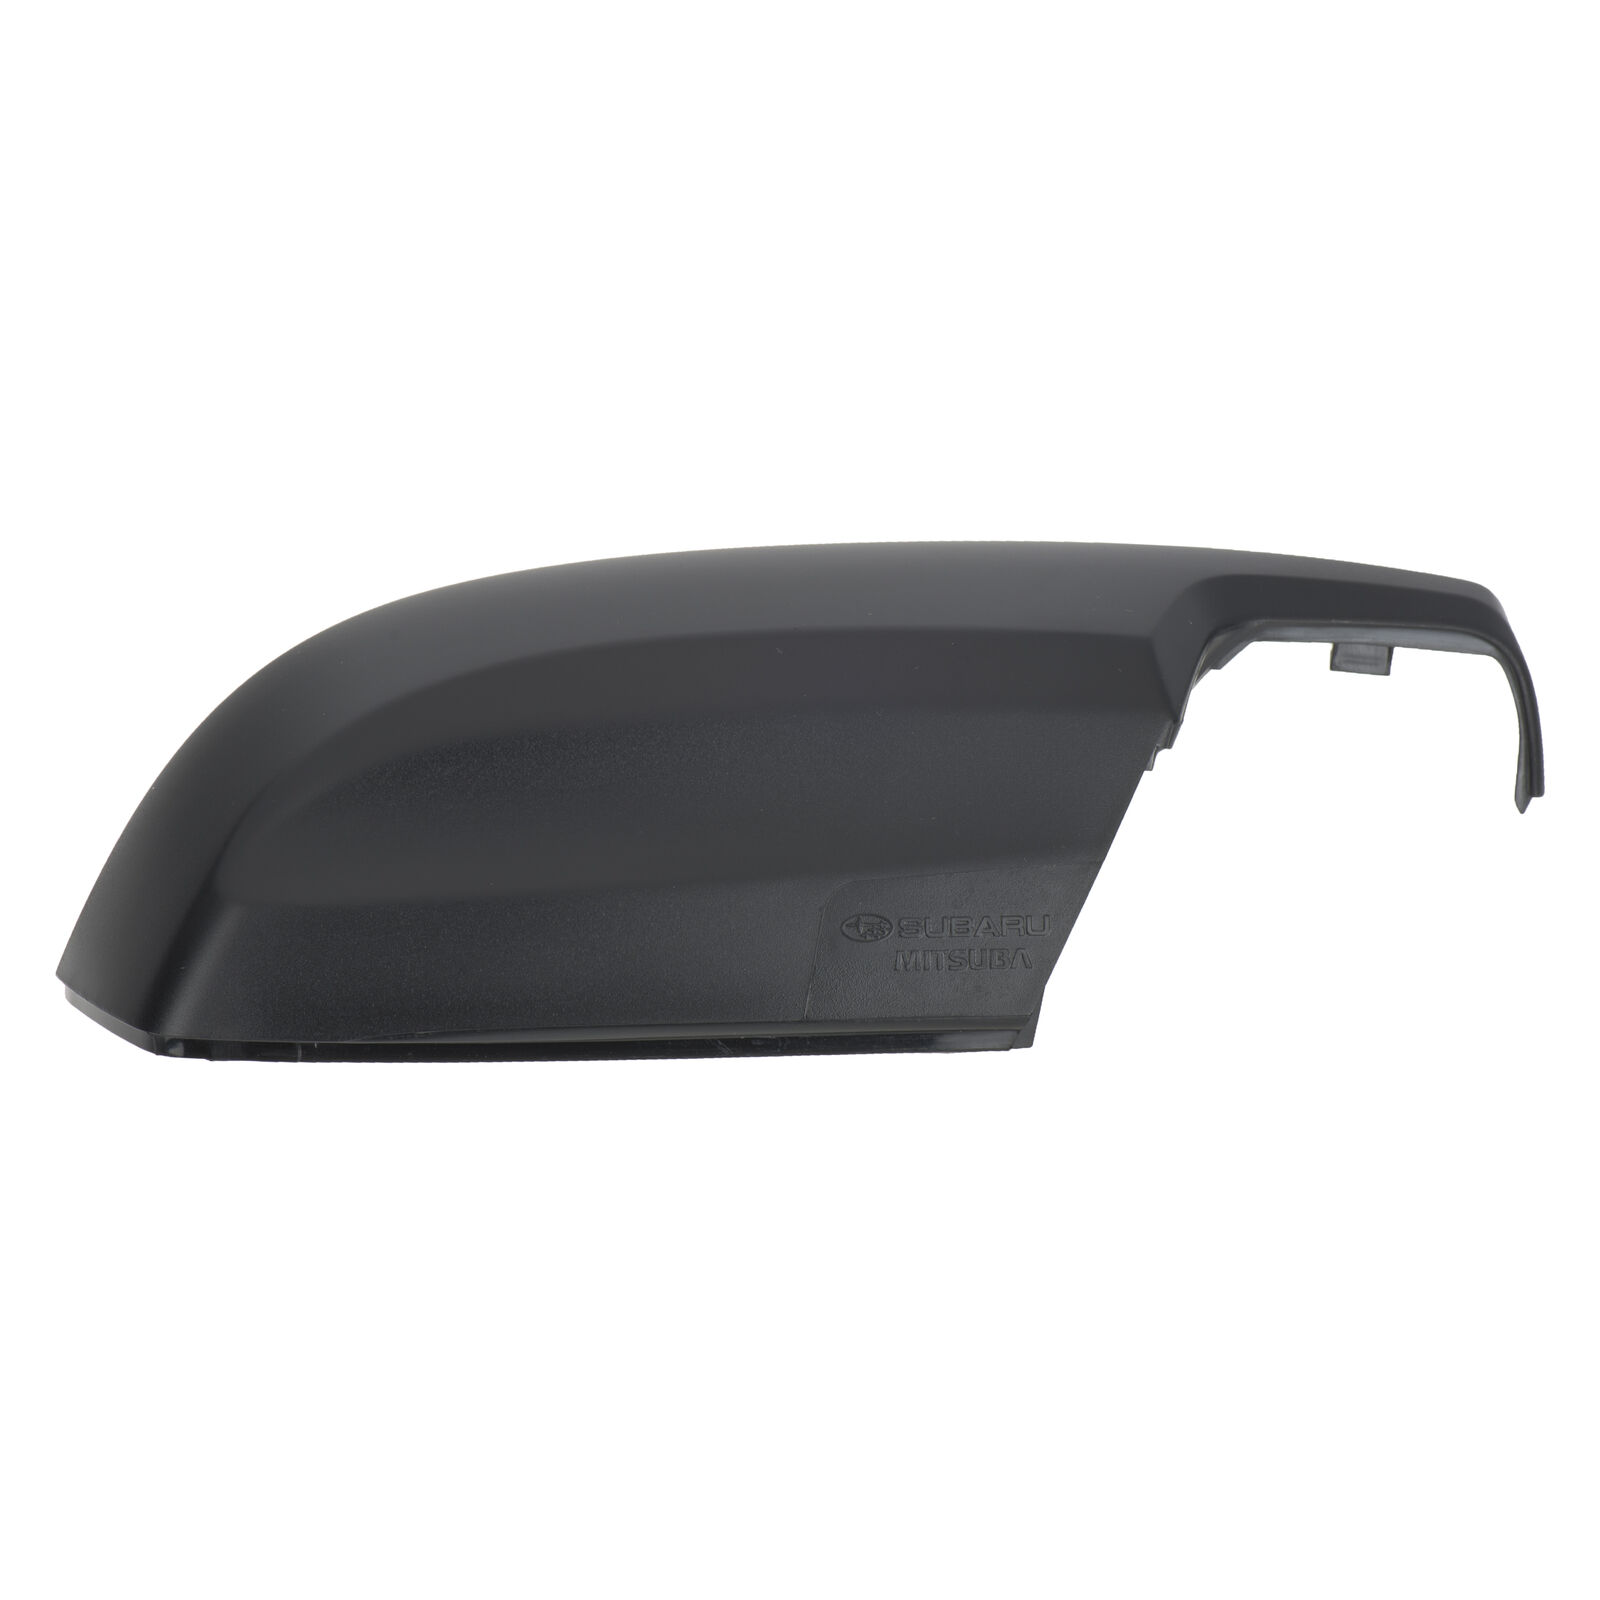 Oem 15 17 Subaru Legacy Outback Right Side View Mirror Lower Trim 2000 Pcv Valve Location 1 Of 5only 2 Available